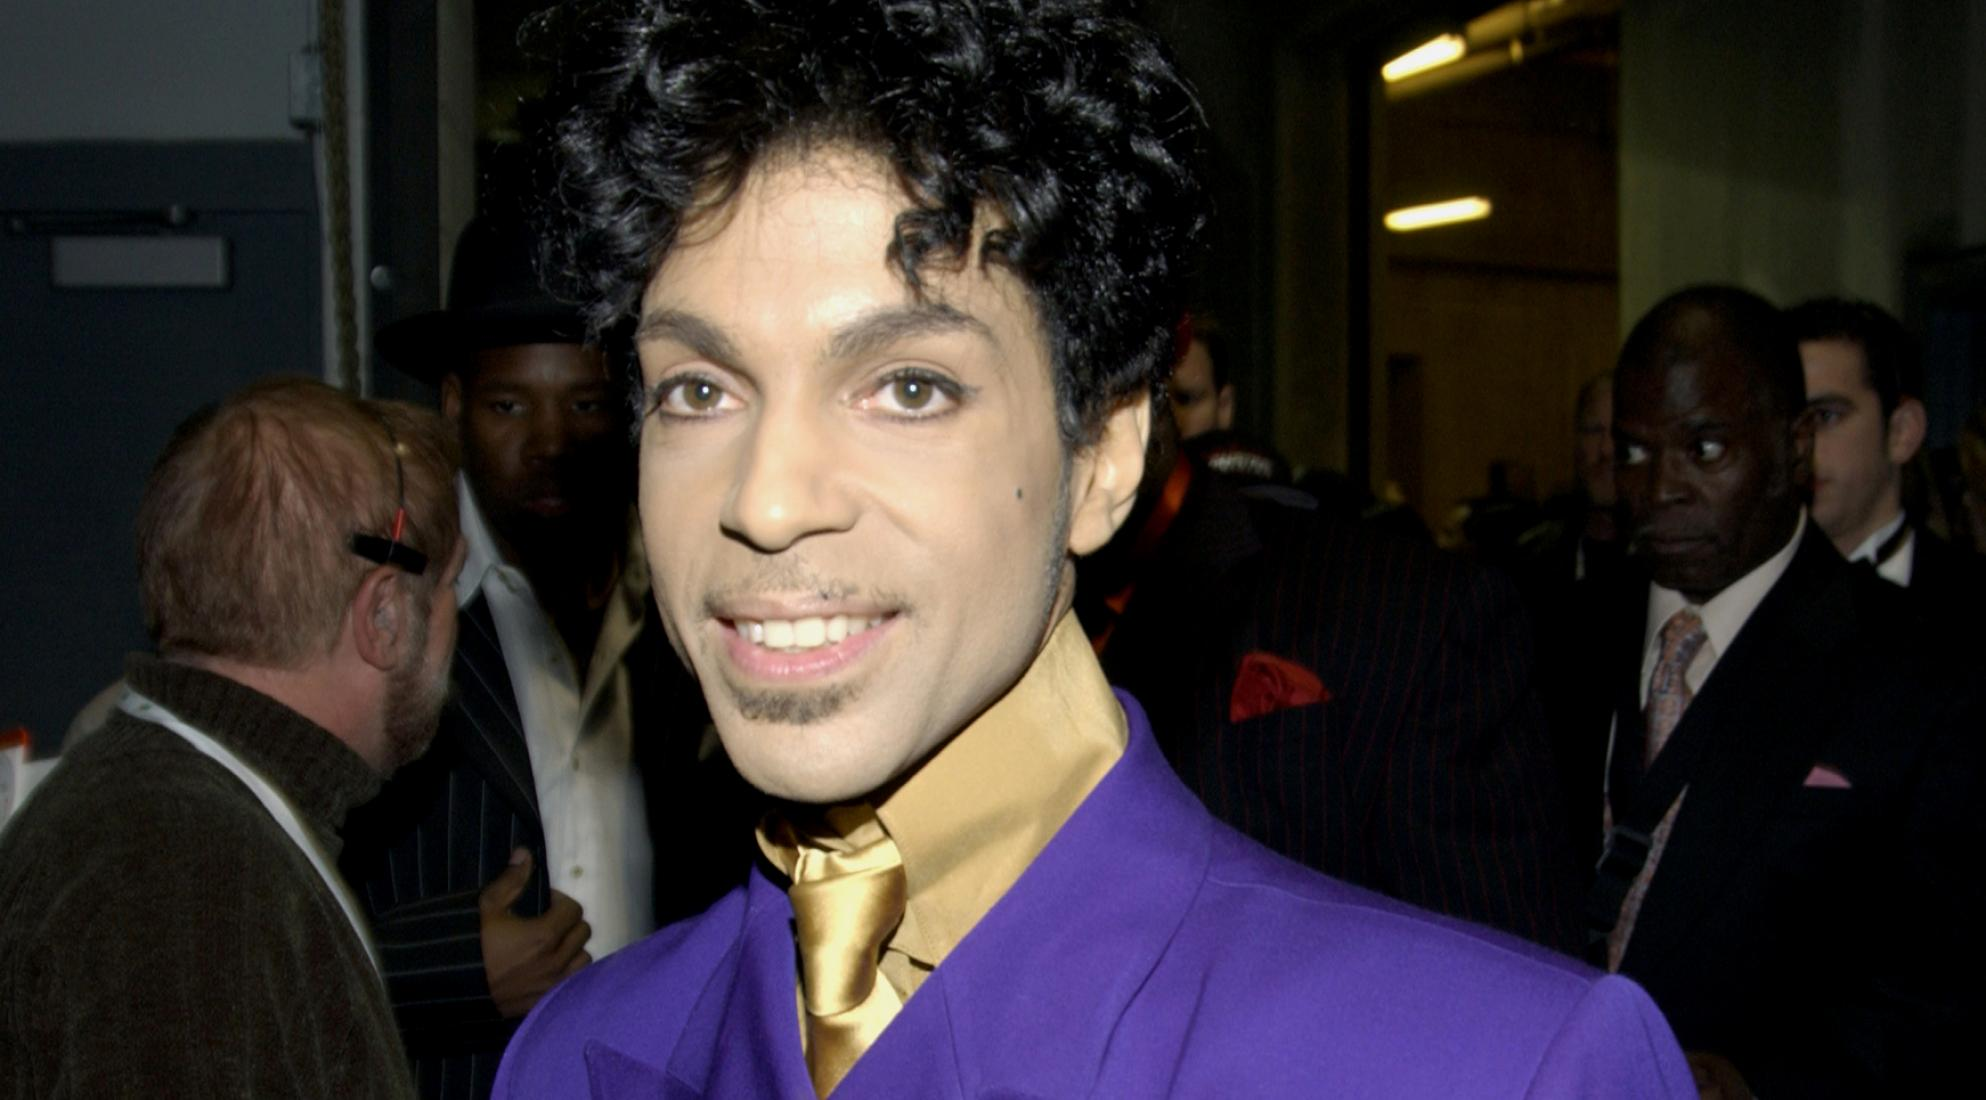 prince was a metrosexual celeb